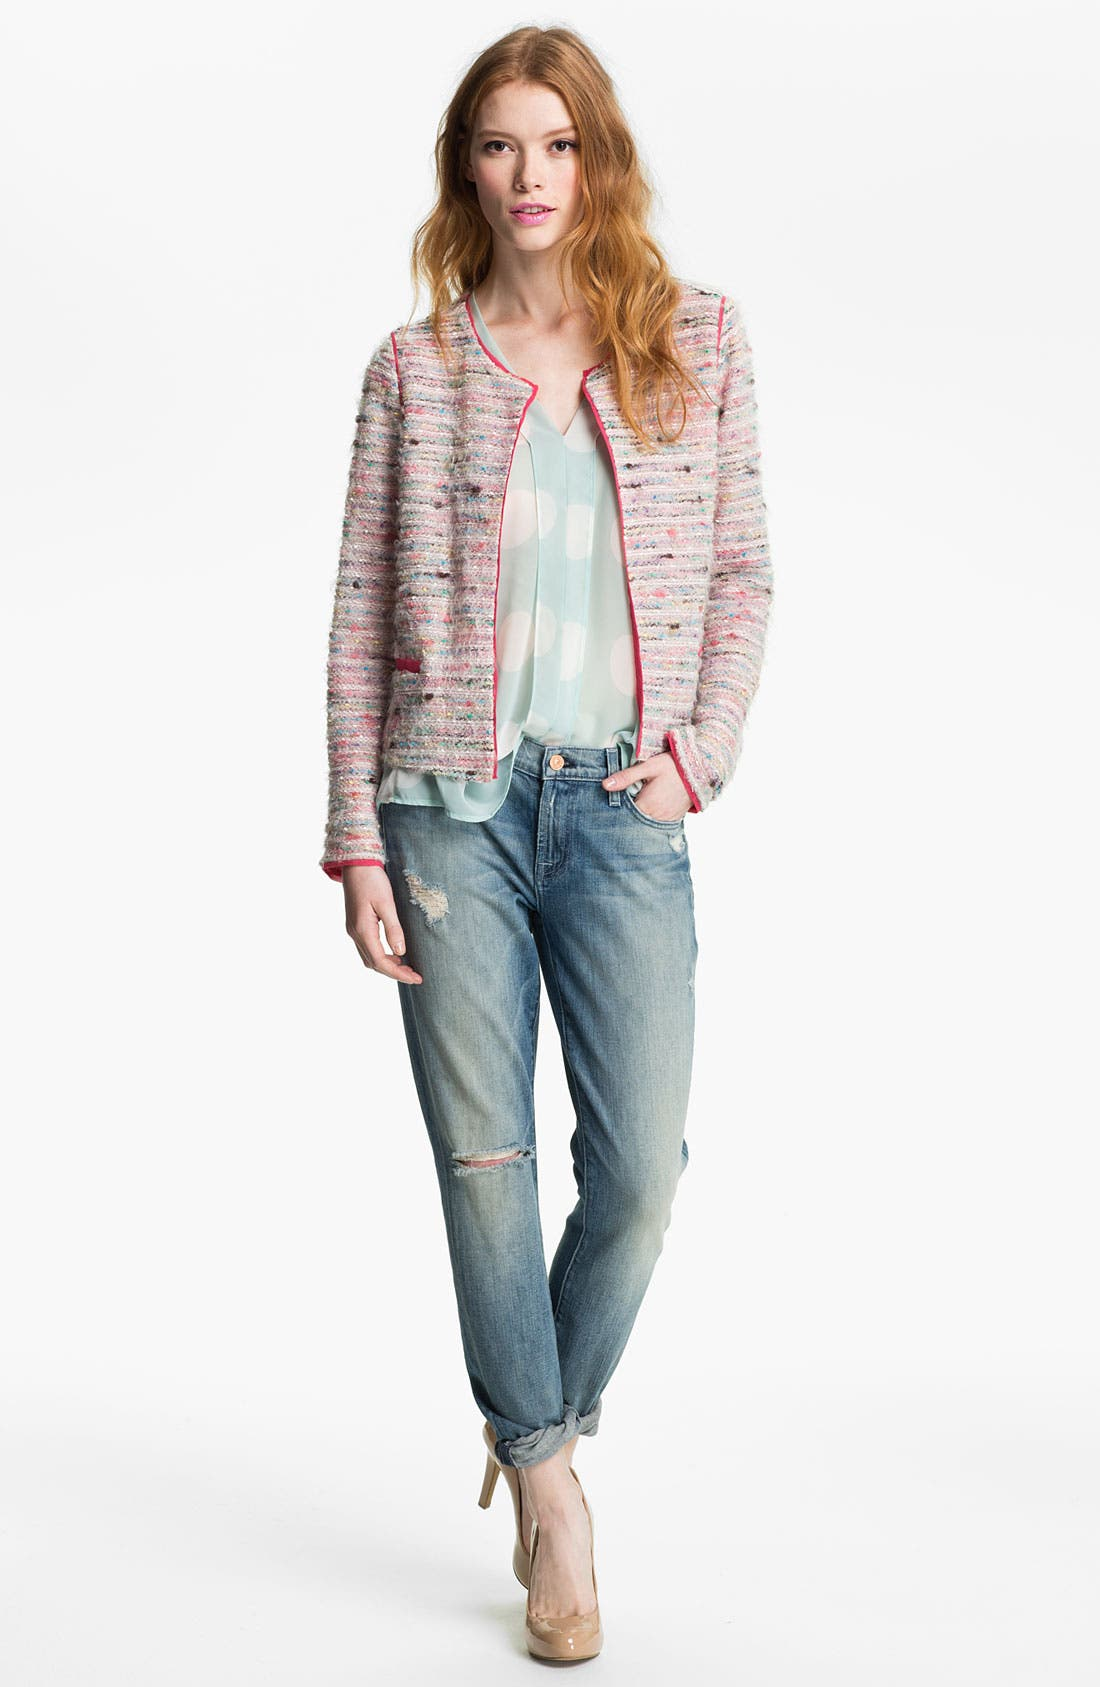 Alternate Image 1 Selected - Willow & Clay Jacket & 7 For All Mankind® Jeans